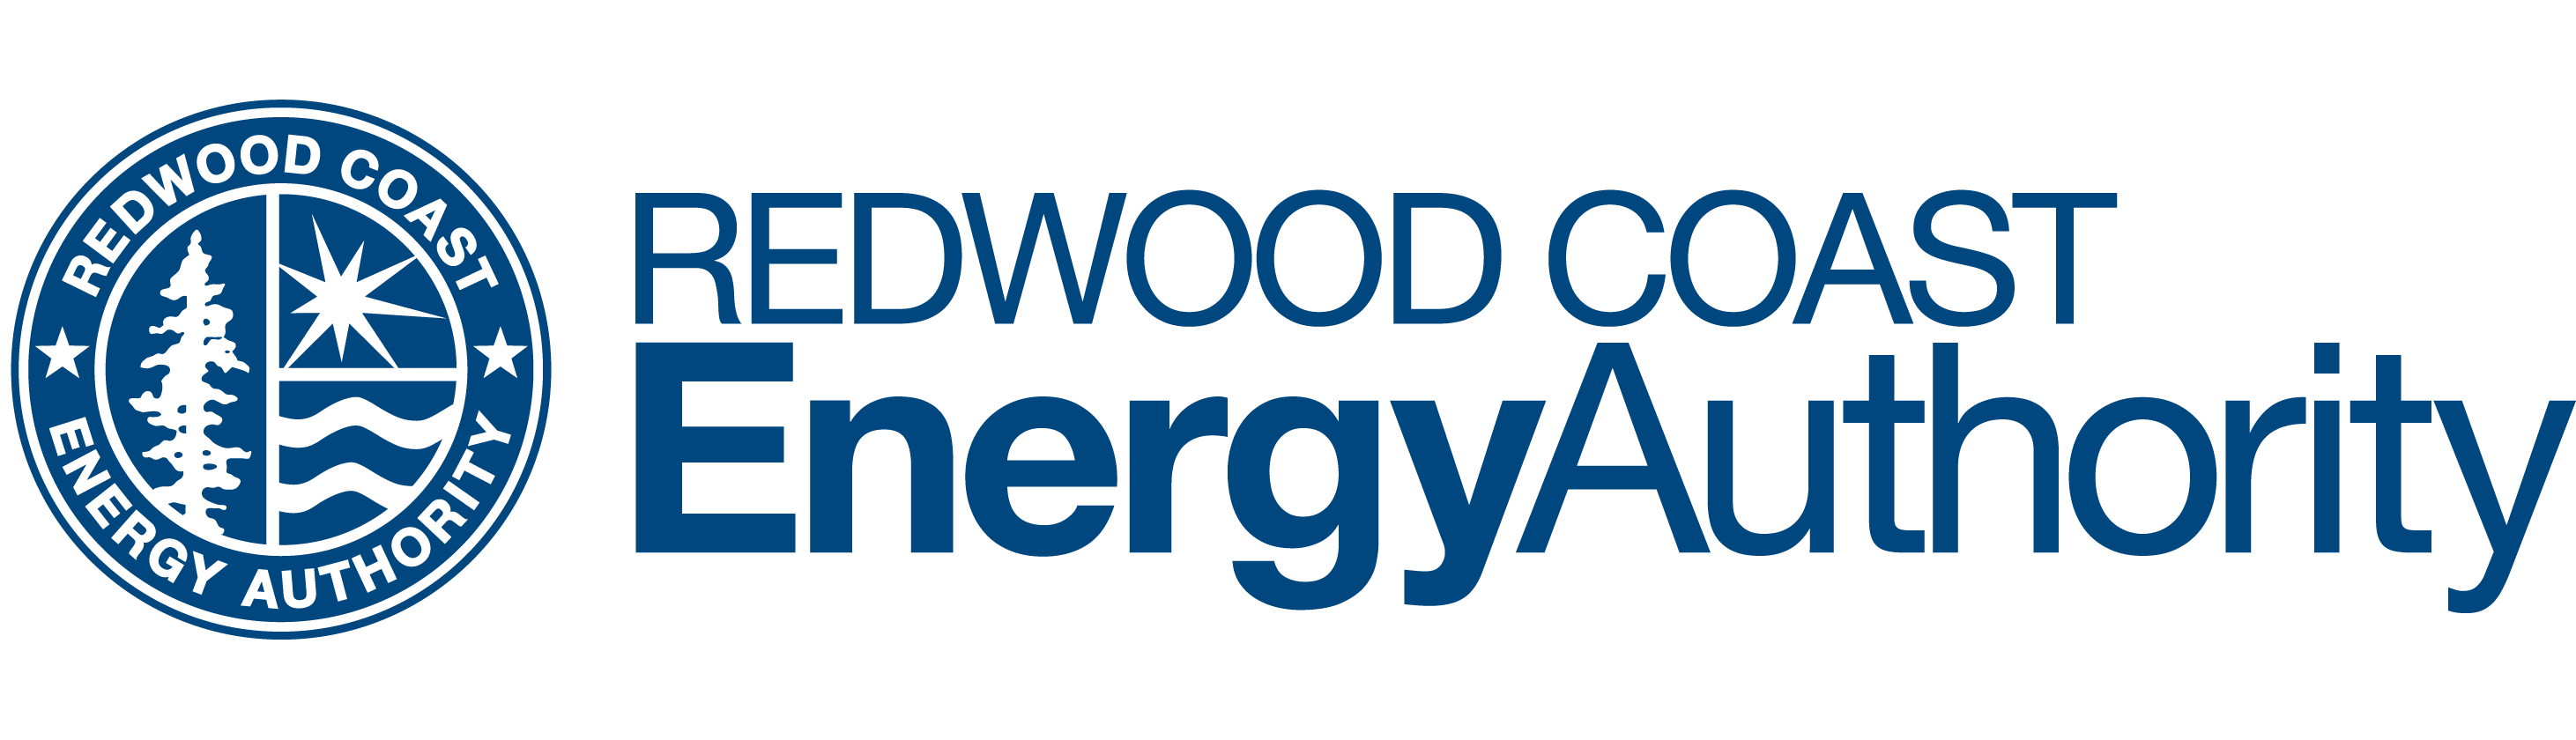 Redwood Coast Energy Authority